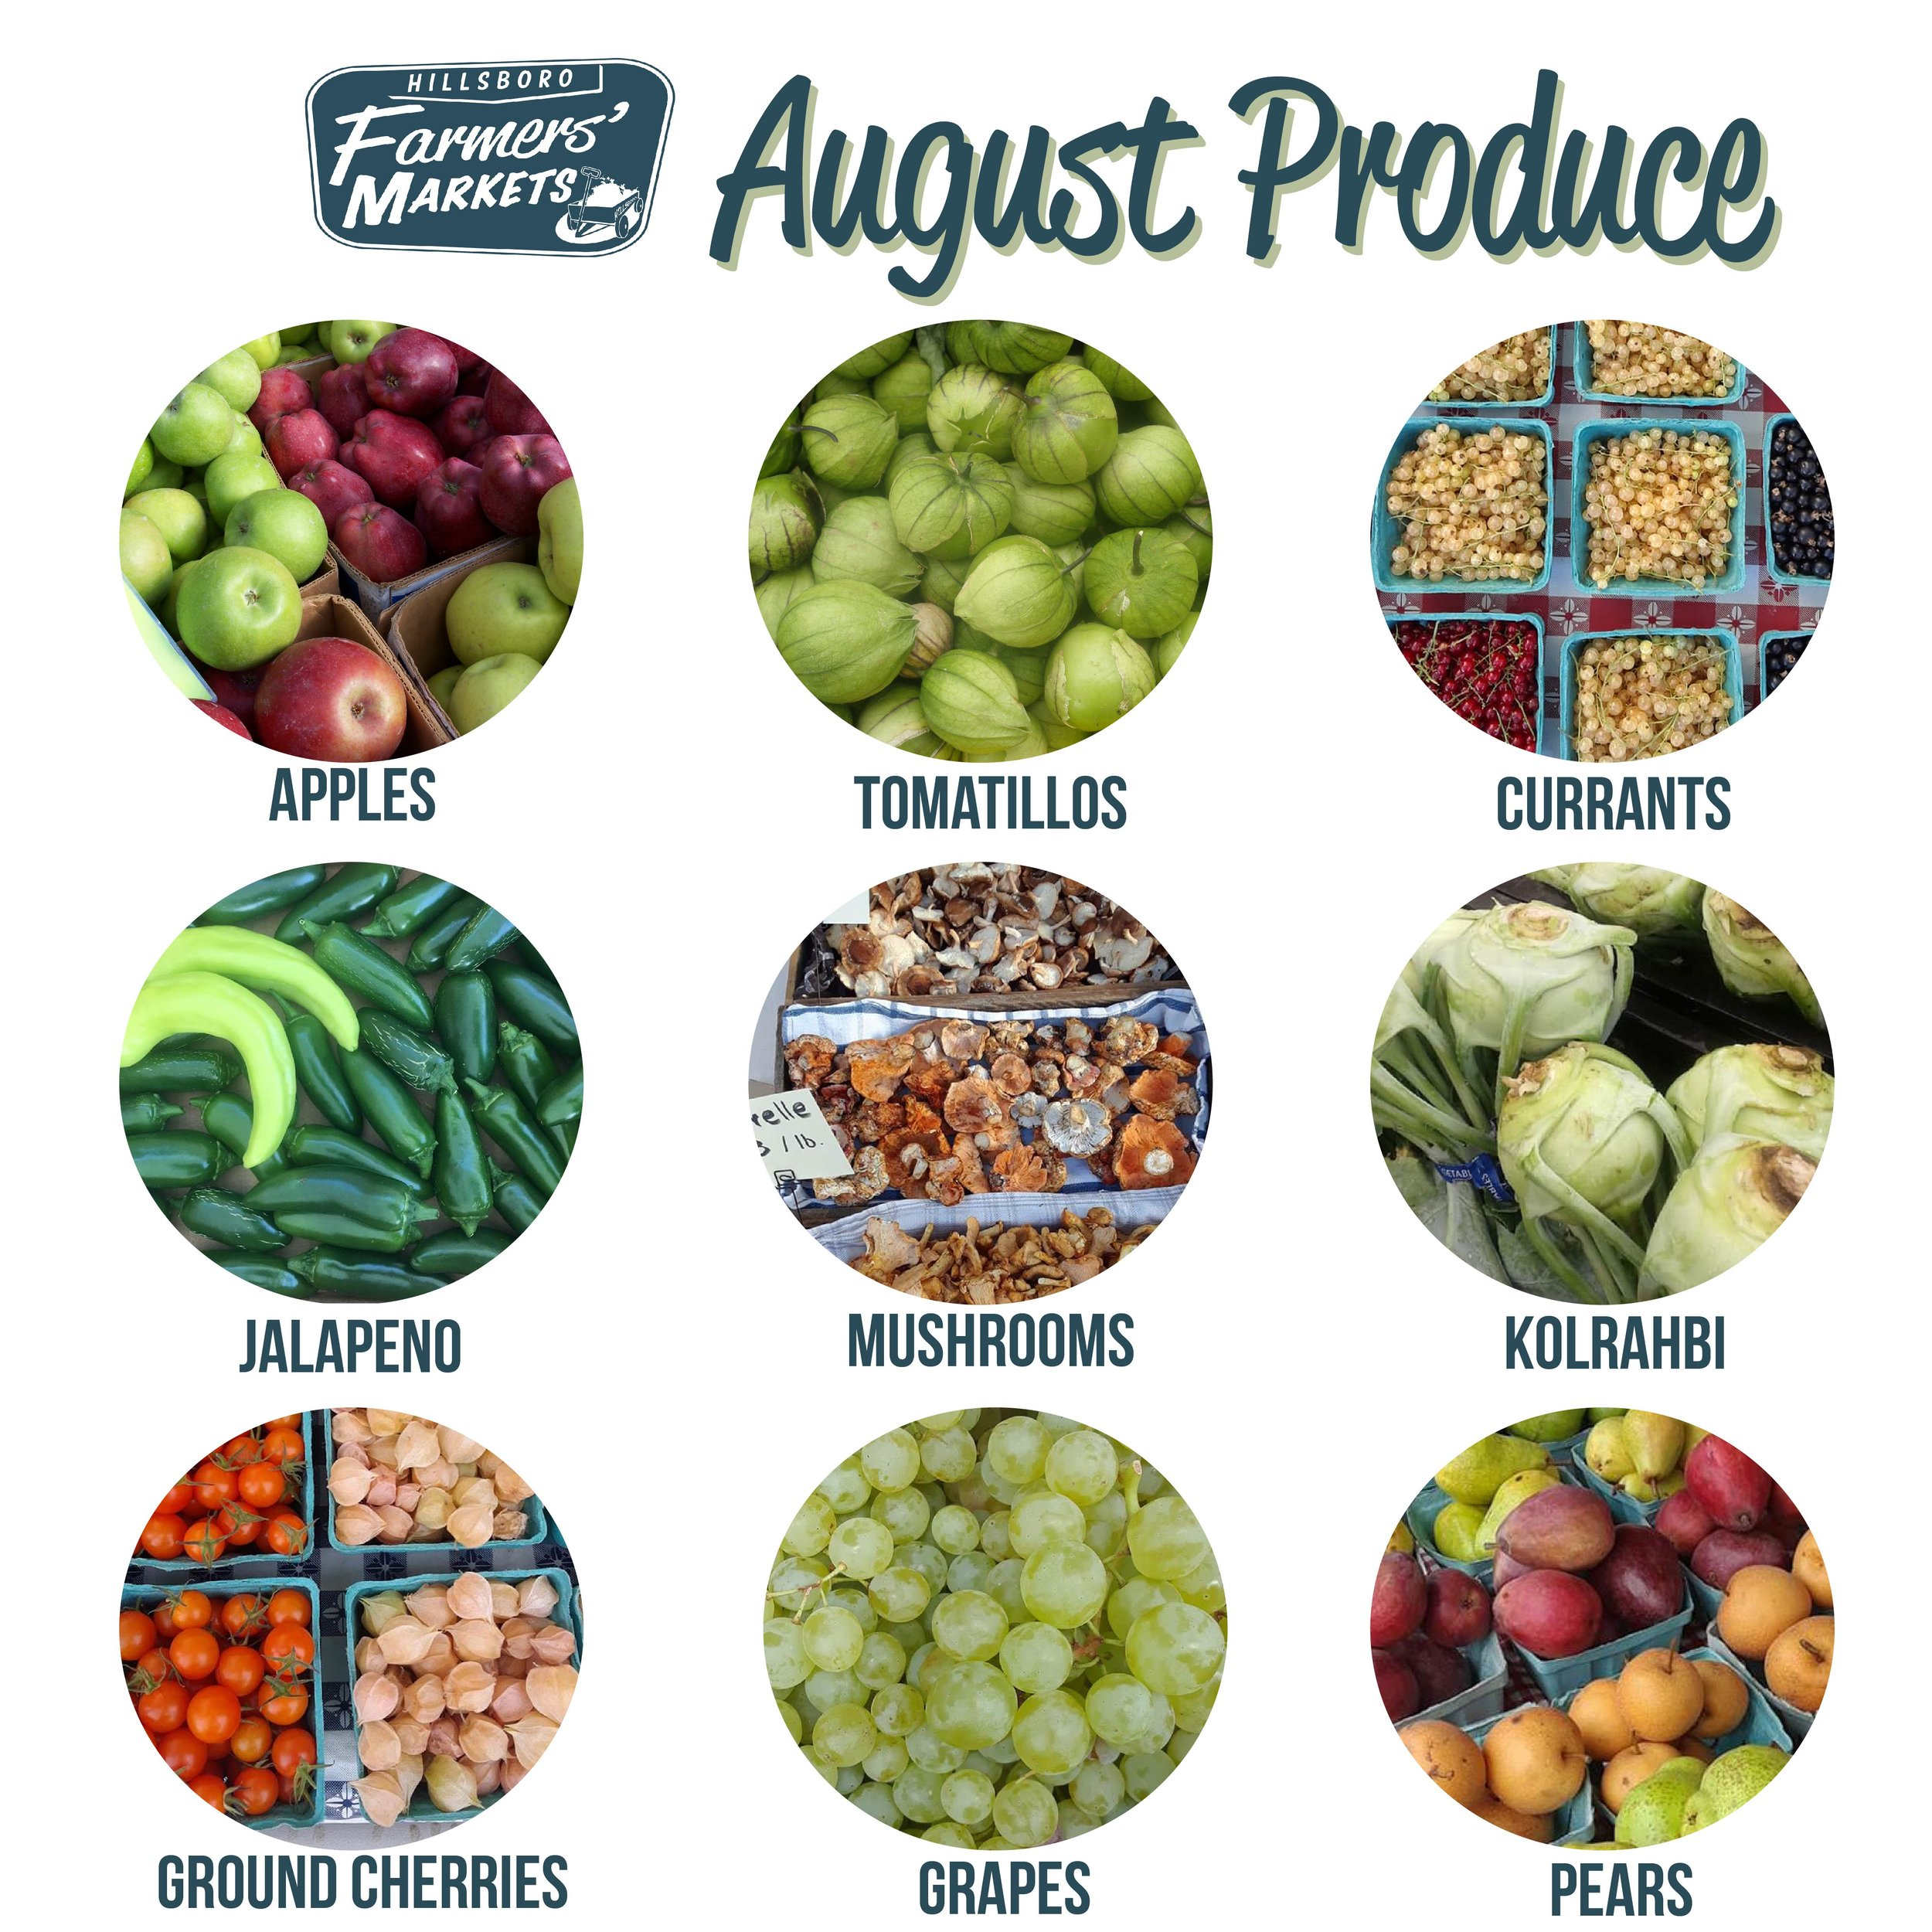 Don't be afraid to try new things this month! Right now you'll find kitchen classics, like apples and pears, alongside unique finds, such as currants and ground cherries. -